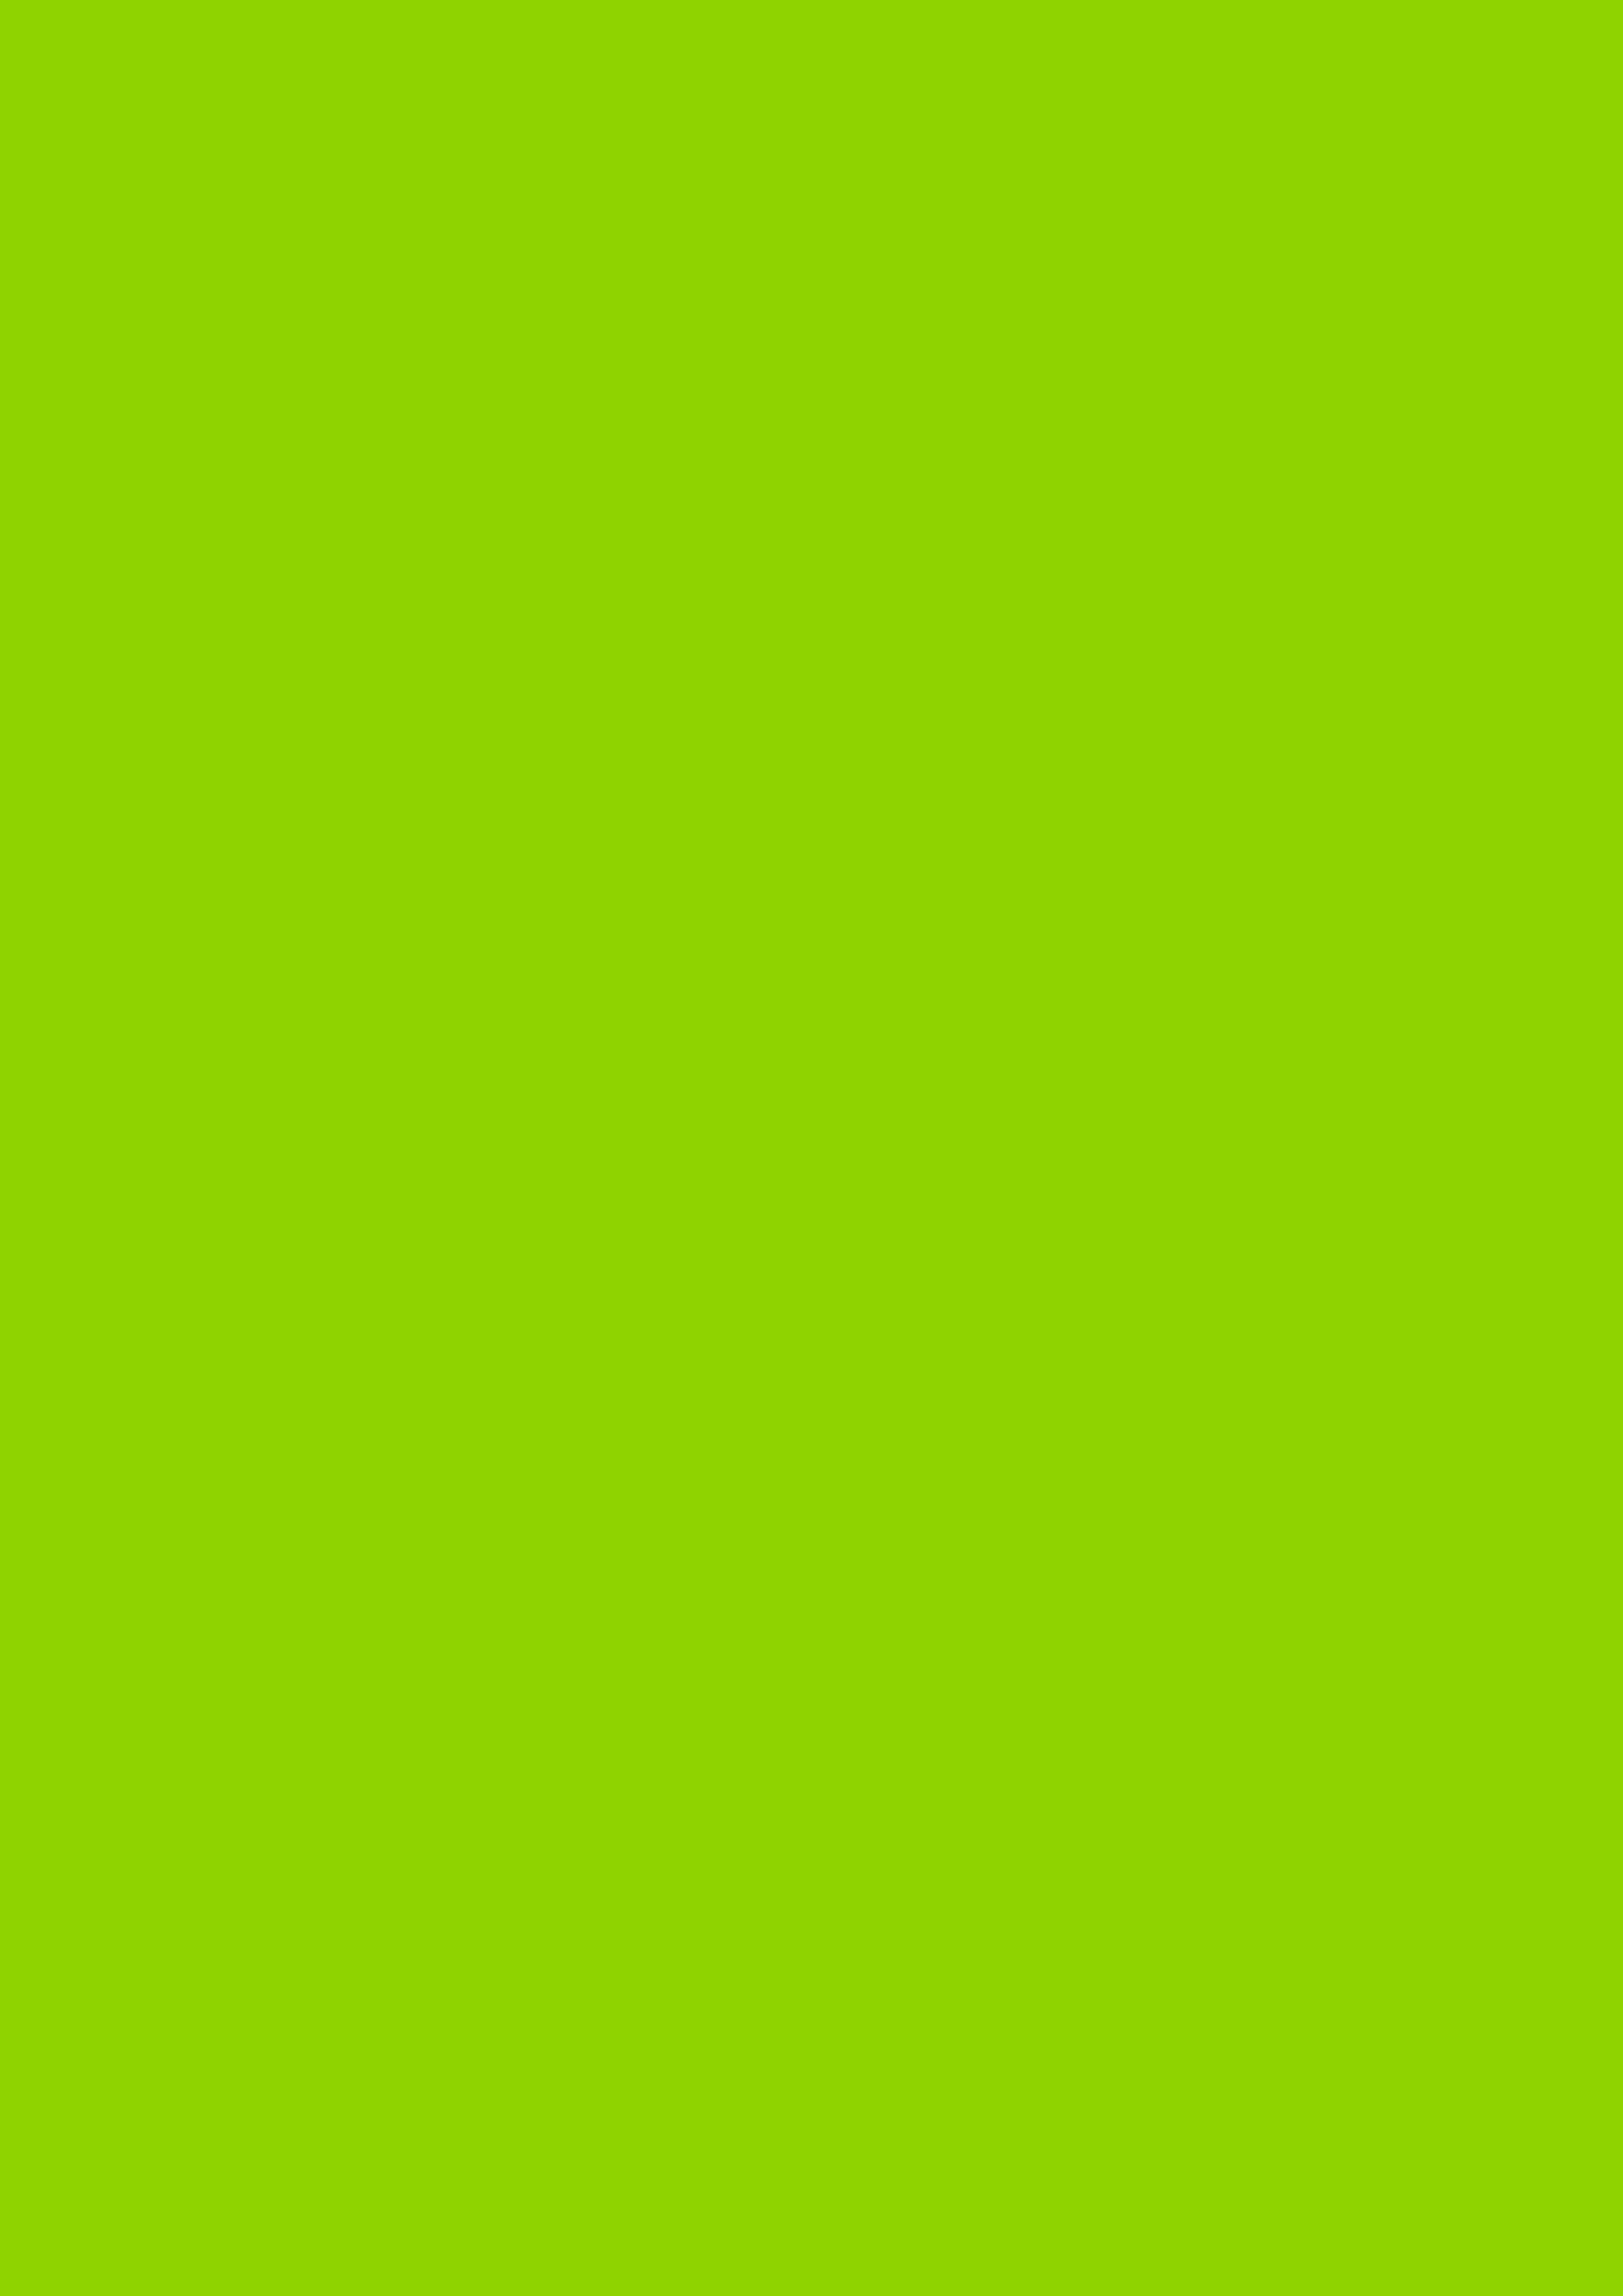 2480x3508 Sheen Green Solid Color Background